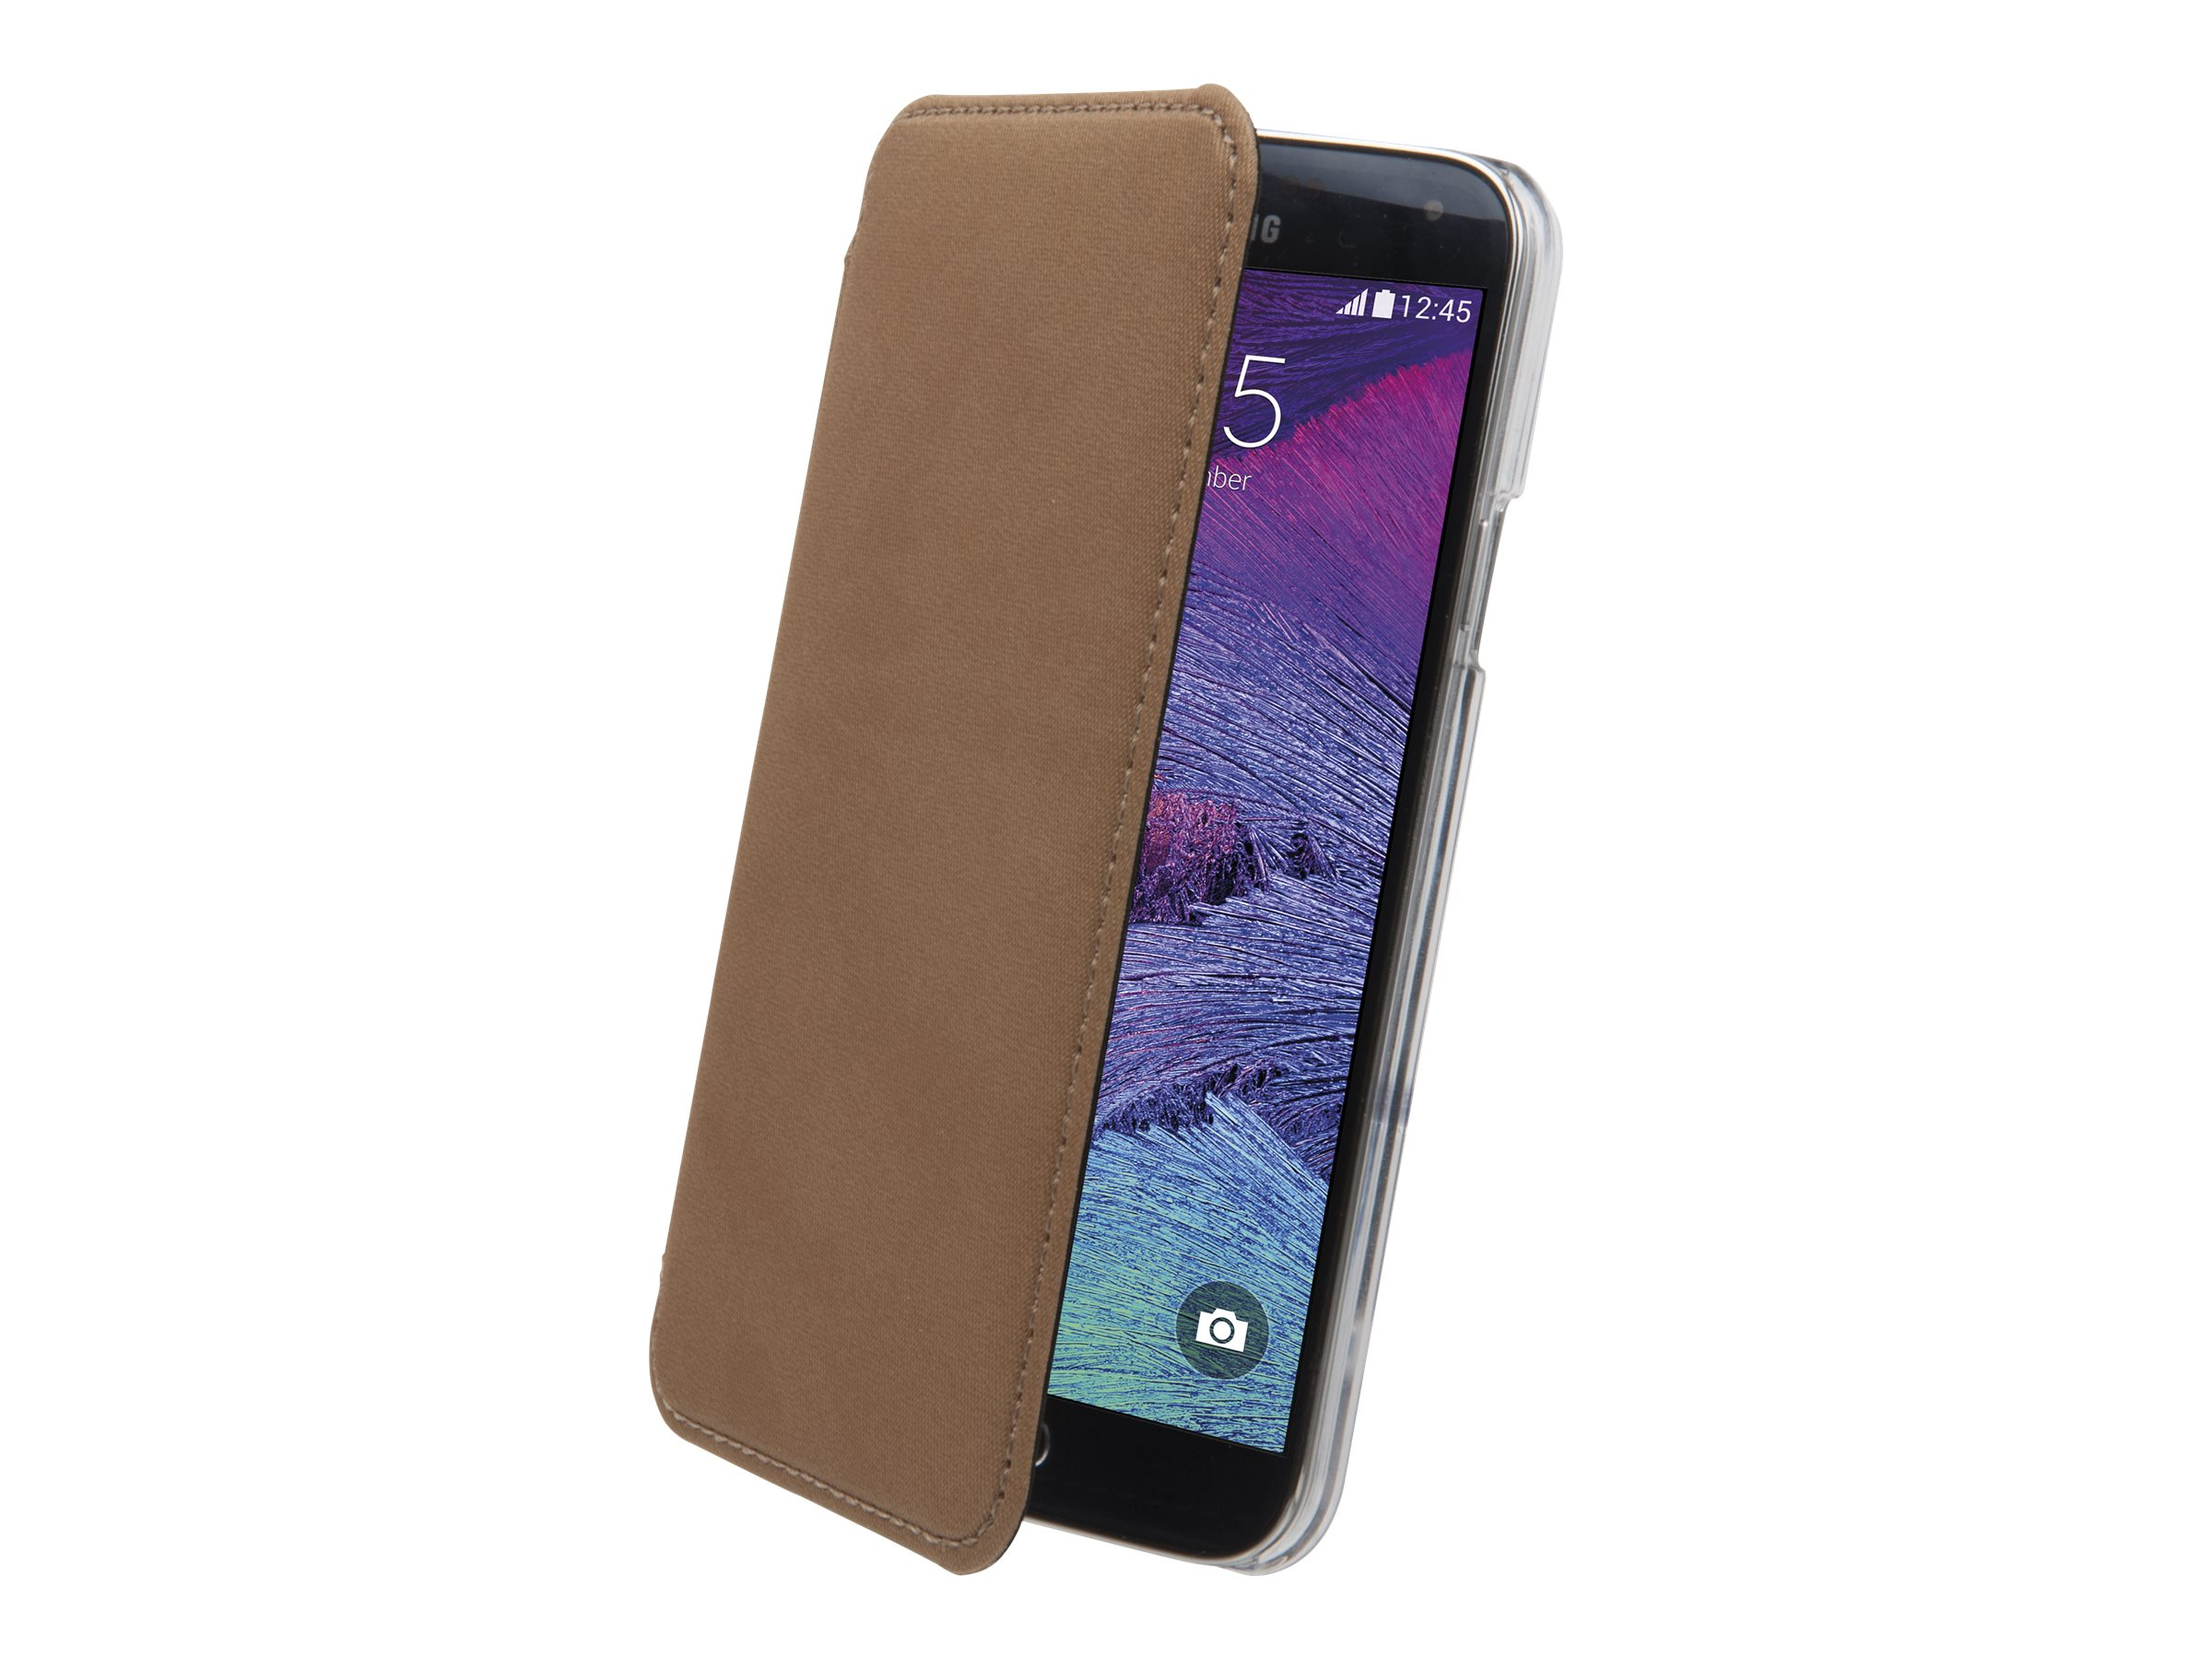 Muvit Made in Paris Crystal Folio - Protection à rabat pour Samsung GALAXY Note 4 - bronze